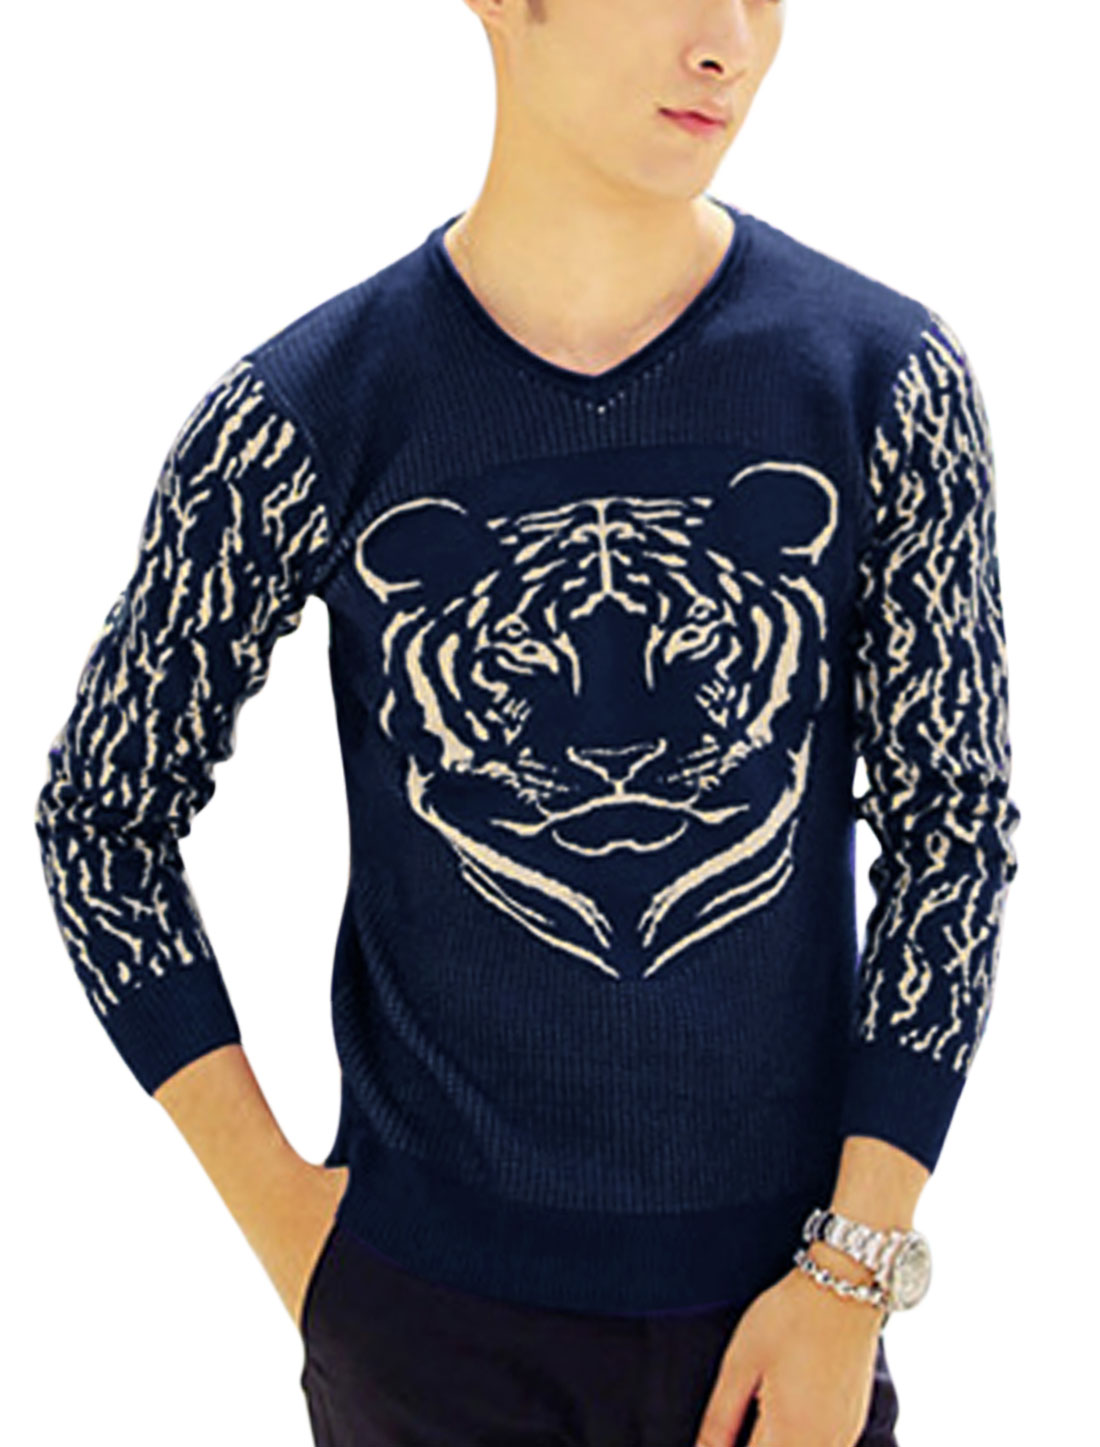 Man Navy Blue Long Sleeves V Neck Pullover Slim Fit Casual Knit Shirt S